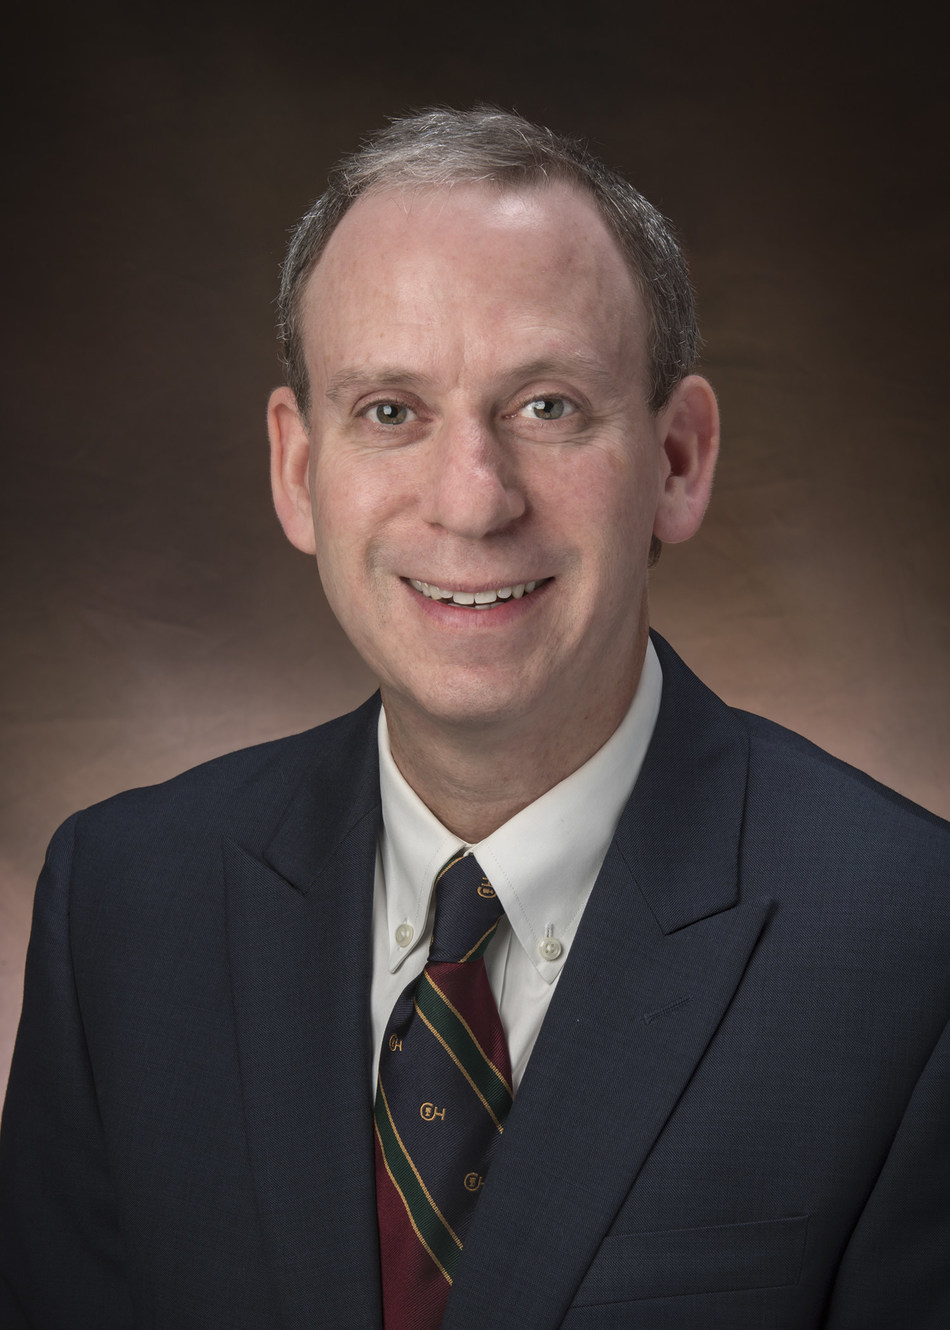 Gil Binenbaum, MD, MSCE, is an Attending Surgeon in the Division of Ophthalmology at Children's Hospital of Philadelphia